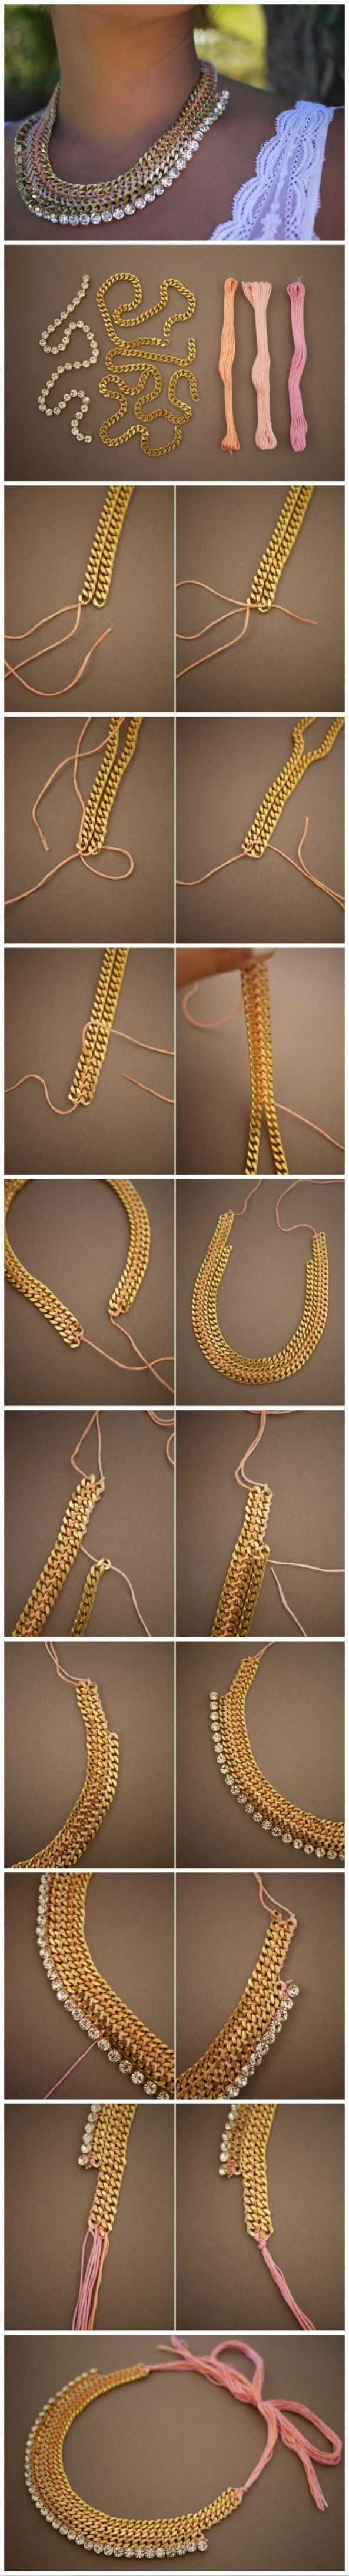 make your own necklace #DIY